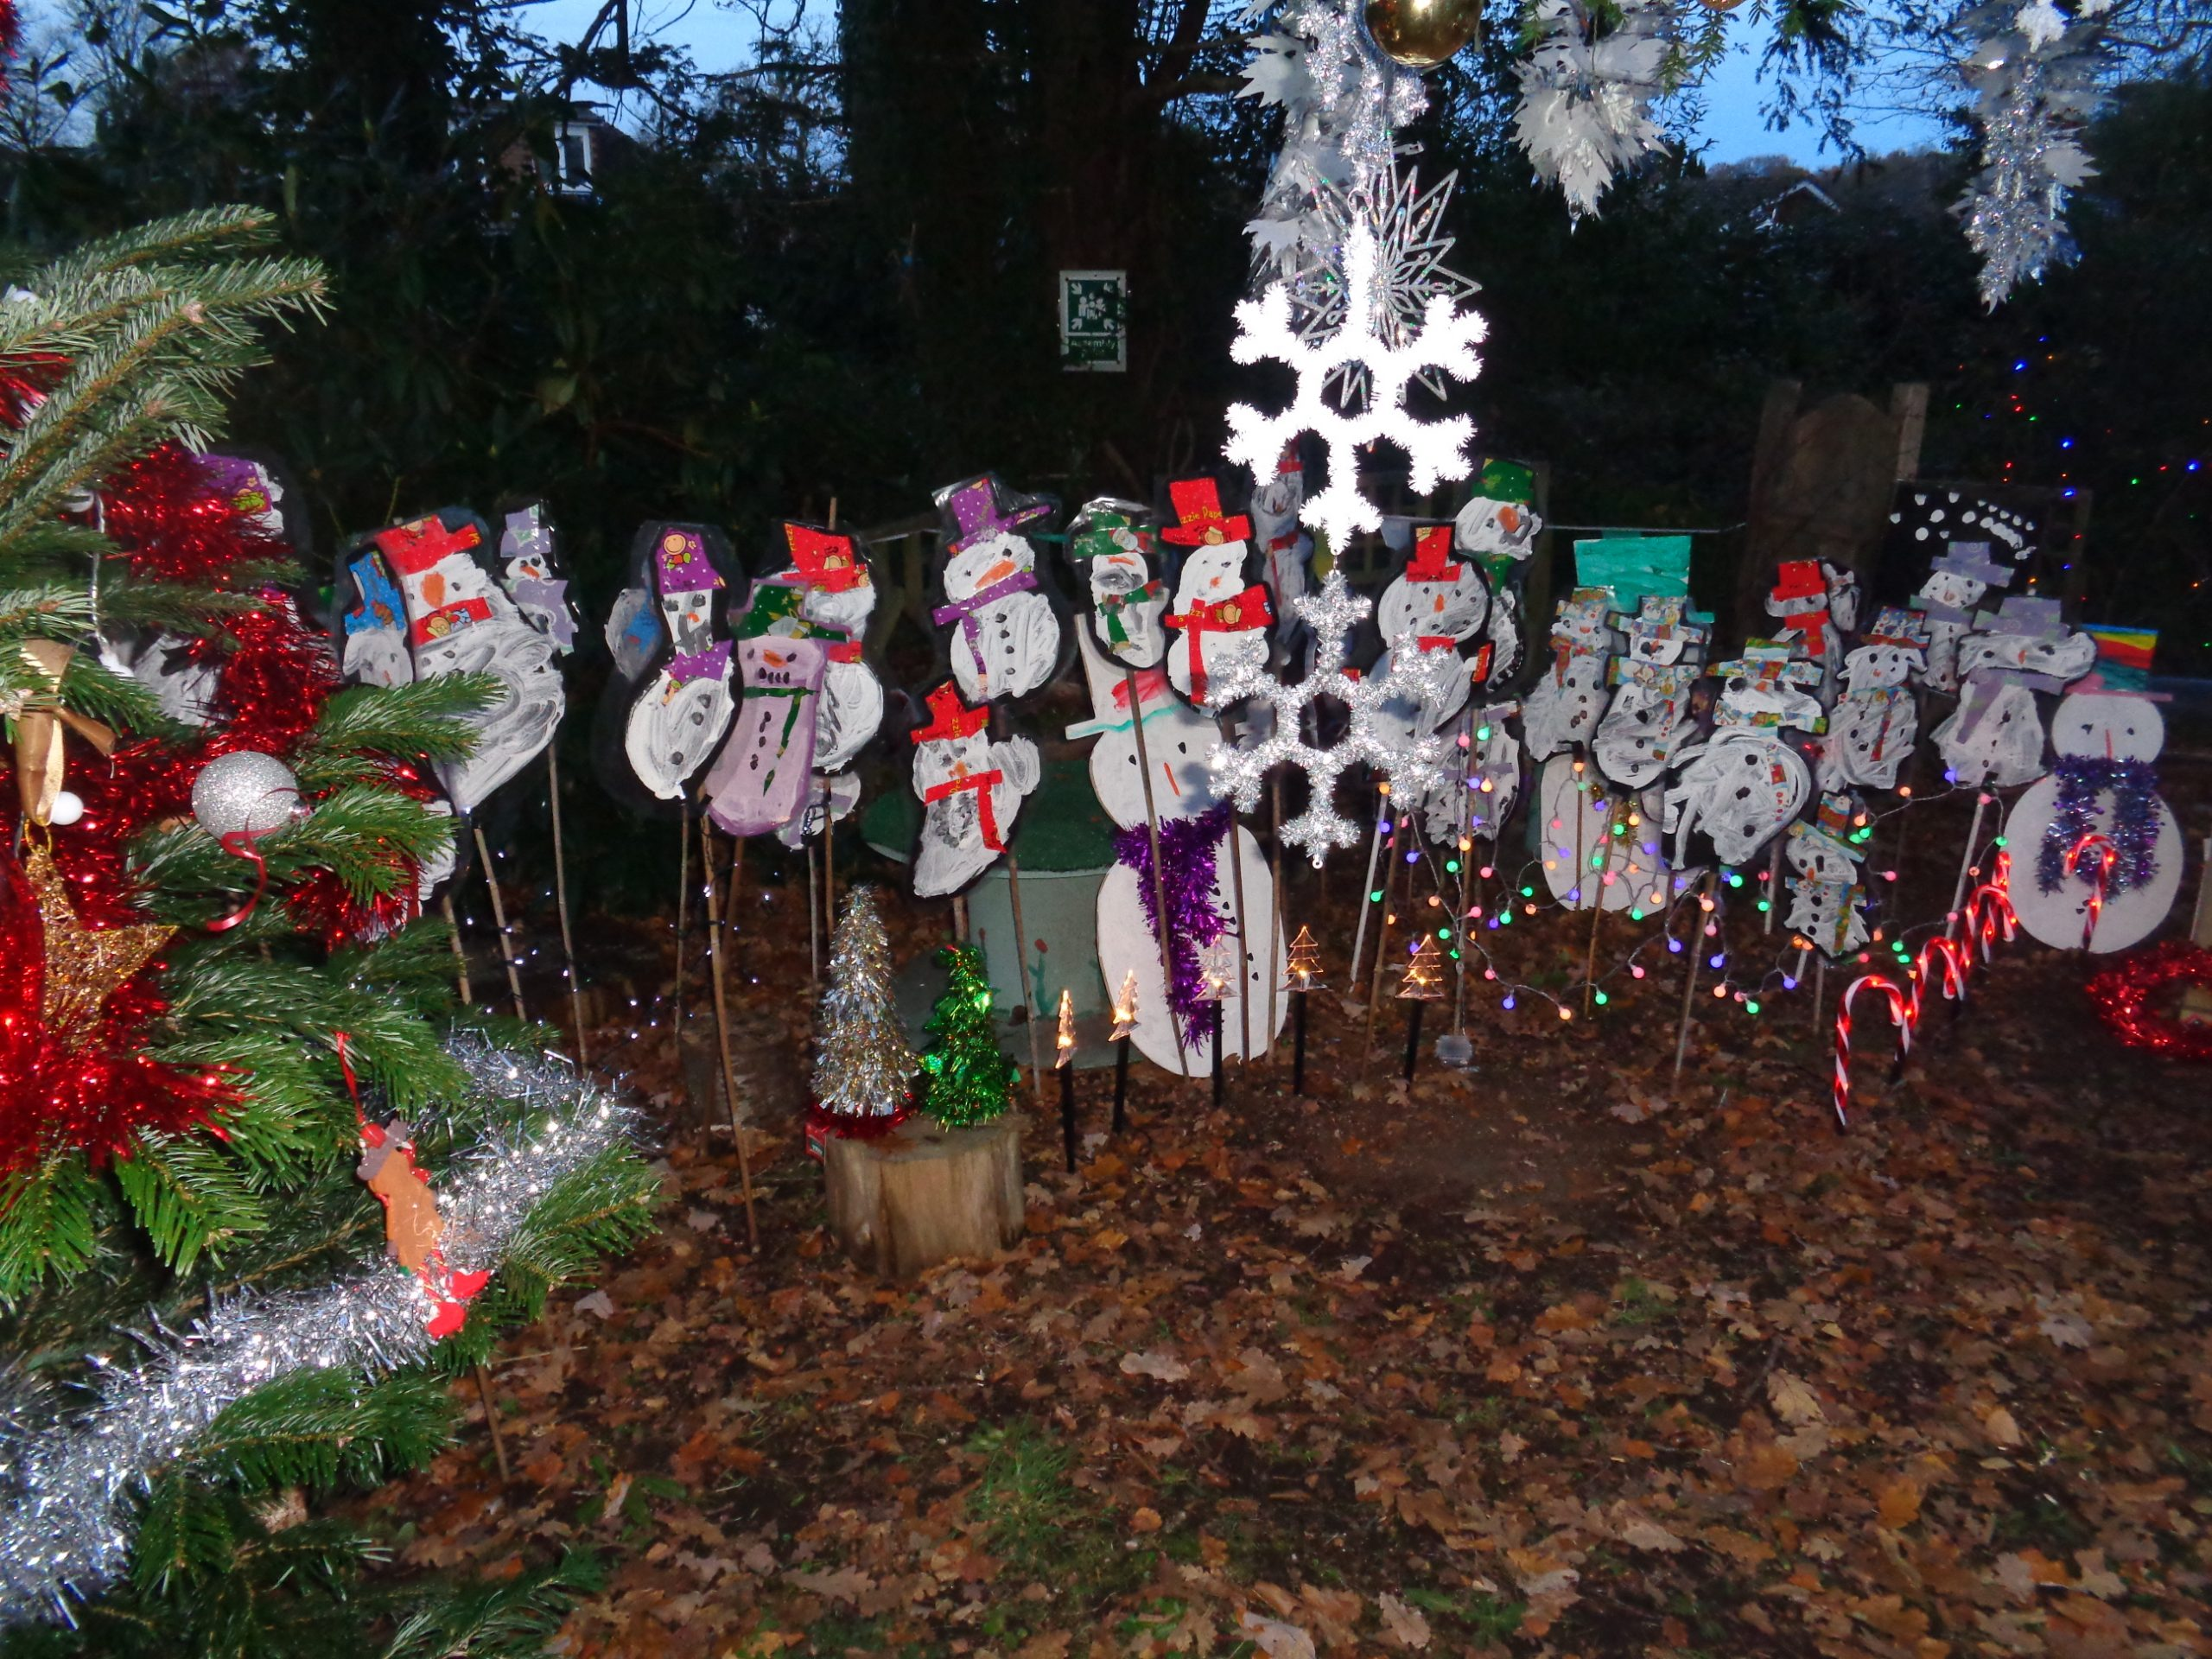 Best Children's Display Joint 1st Place - Chewton Common Playgroup